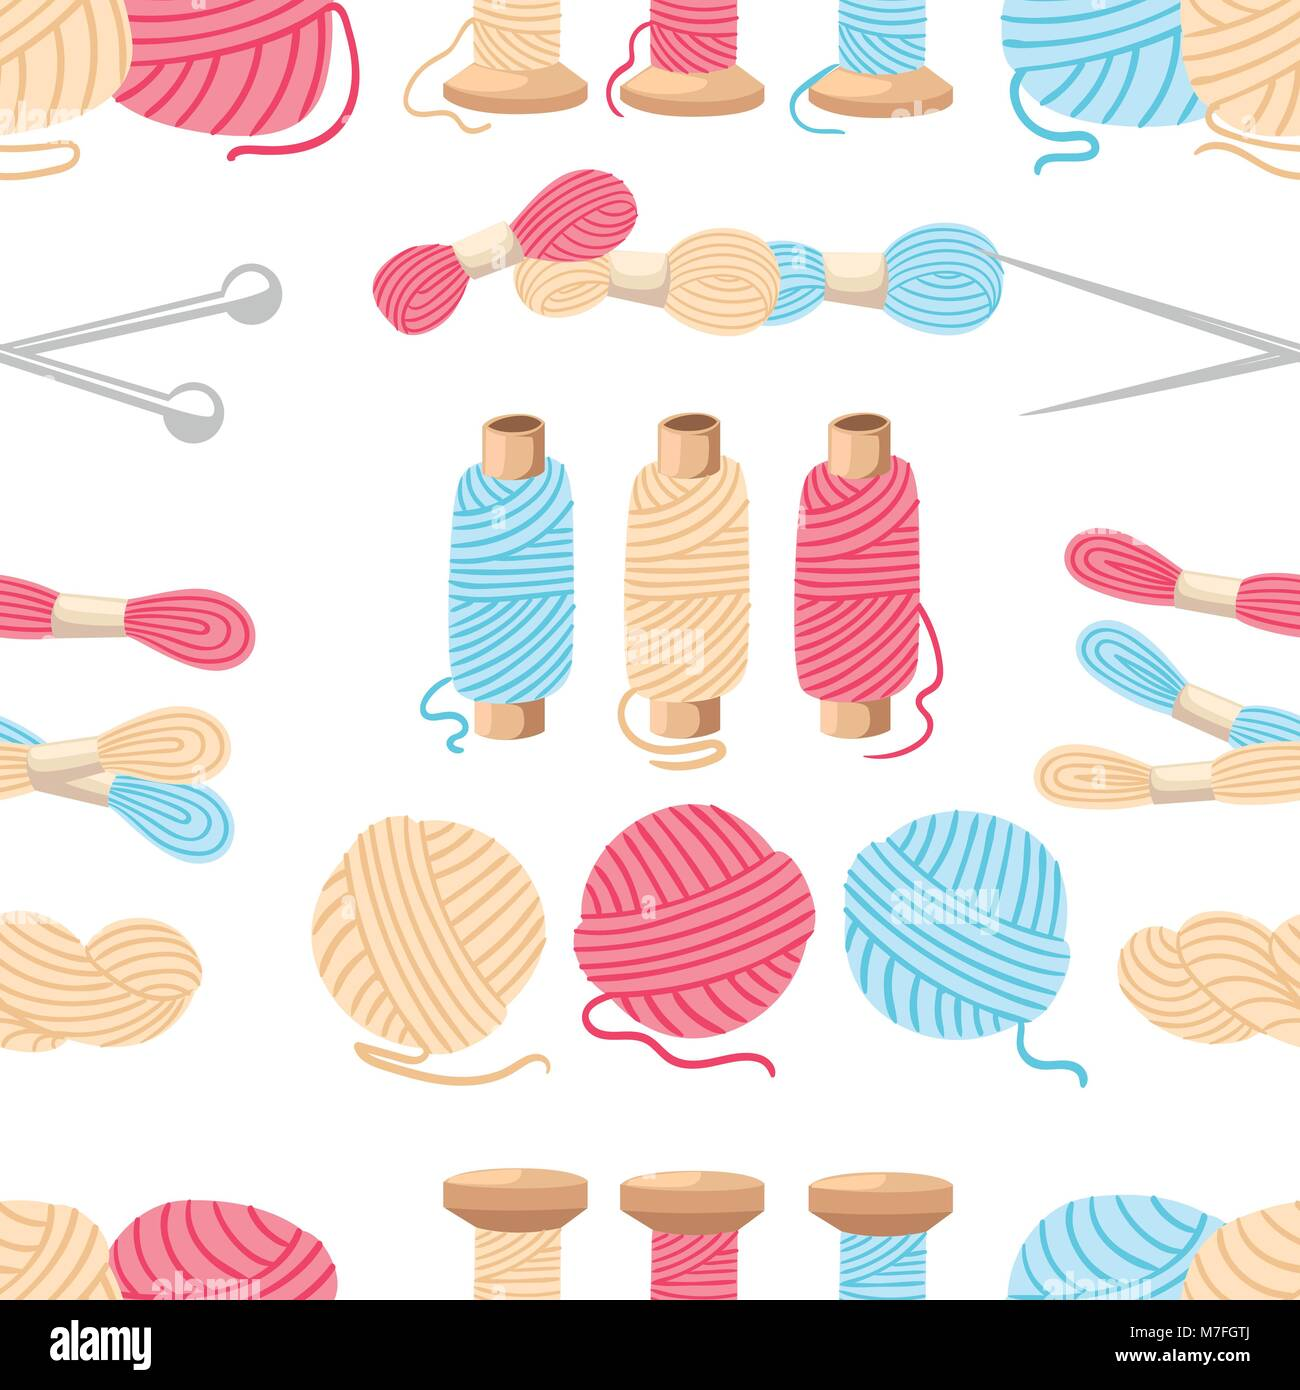 Seamless pattern. Threads for sewing for cross stitching set tools for sewing knitting needles vector wool knitwear - Stock Vector